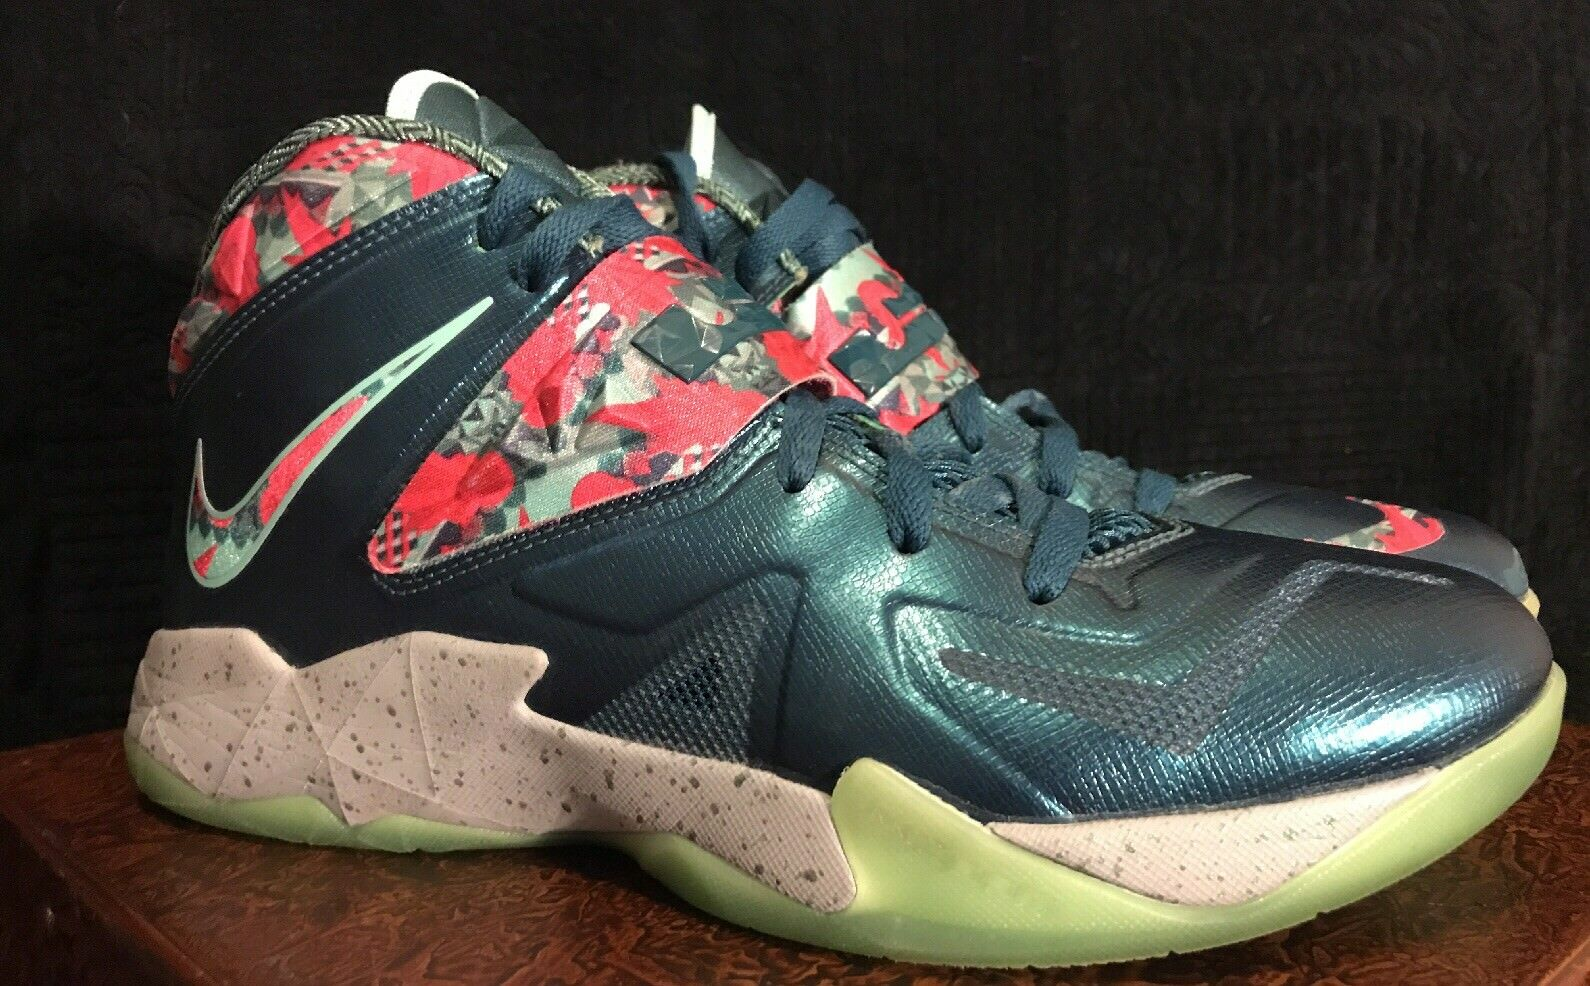 Nike Zoom Soldier VII 7 LBJ Lebron James Power Couple Drk sea/ floral Size US 10